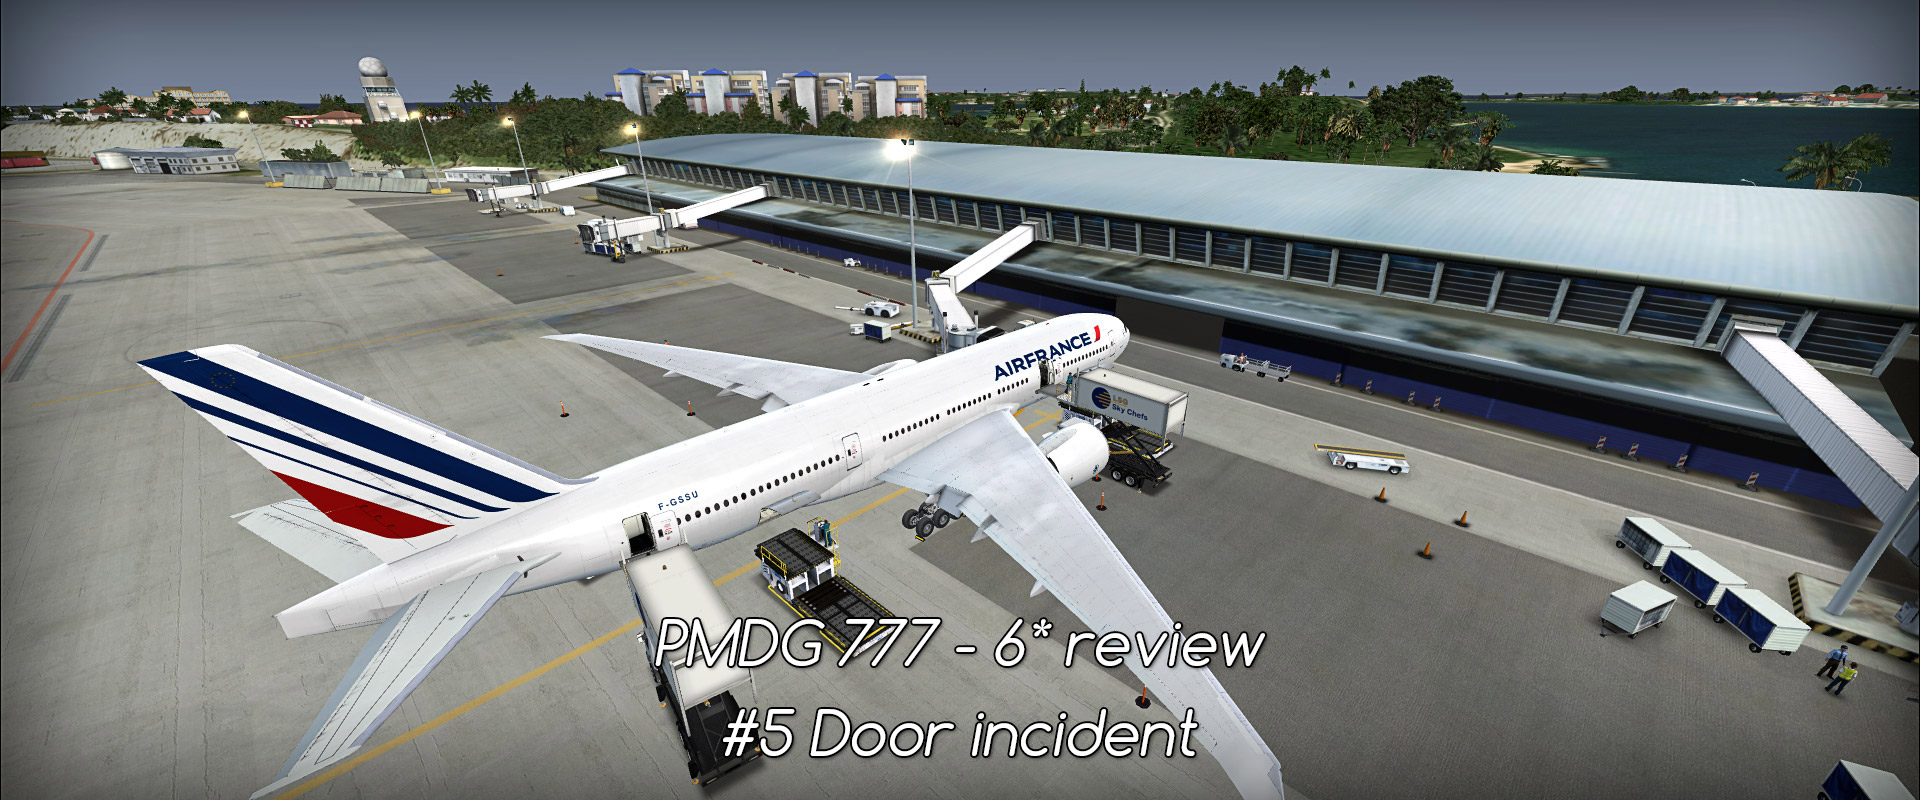 Boeing 777 - PMDG - review (6*) • C-Aviation